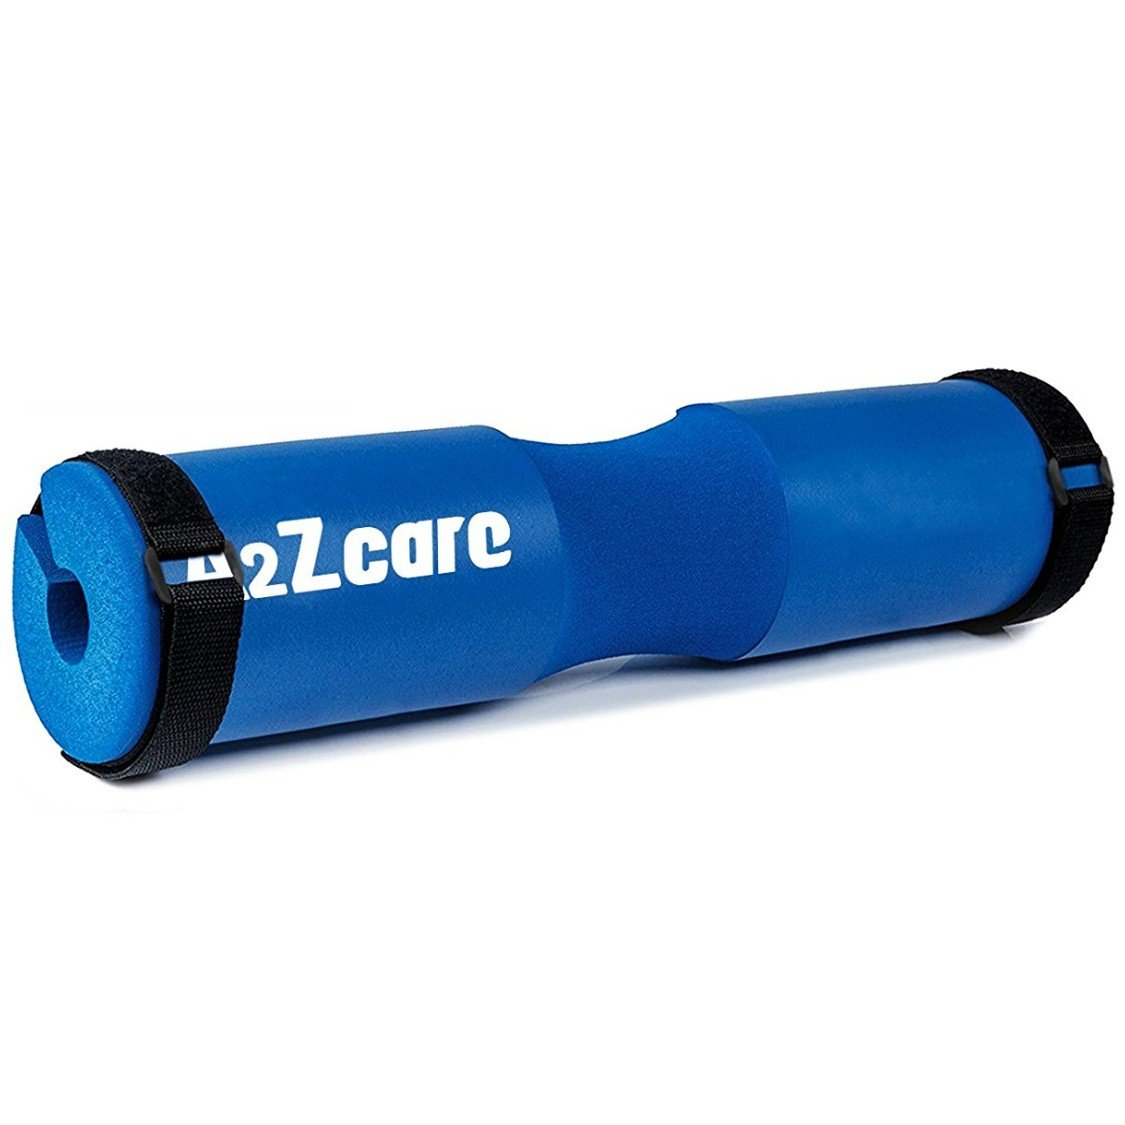 A2ZCARE Squat Pad Fits Olympic Weightlifting Bar with 2 Belts for Secure & Nonslip - Comfortable Thick Foam Barbell Pad for Squats, Lunges & Hip Thrusts - Protect Neck & Shoulder